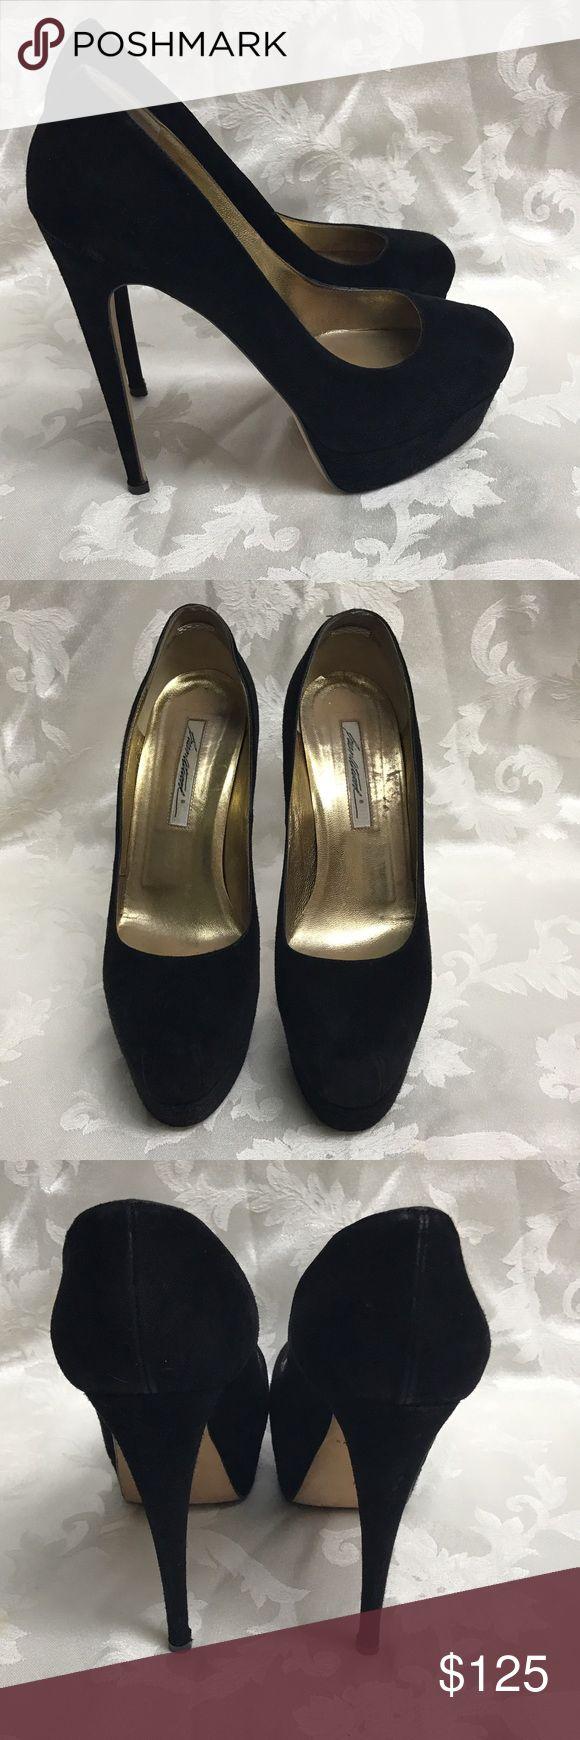 Brian Atwood Hamper Black Suede Made in Italy, many celebrities have donned the Brian Atwood Hamper.  These are amazing shoes.  They have been worn a few times.  New heel taps put on professionally.   Size 41 fits US 11. Brian Atwood Shoes Heels #brianatwoodheelsfashion